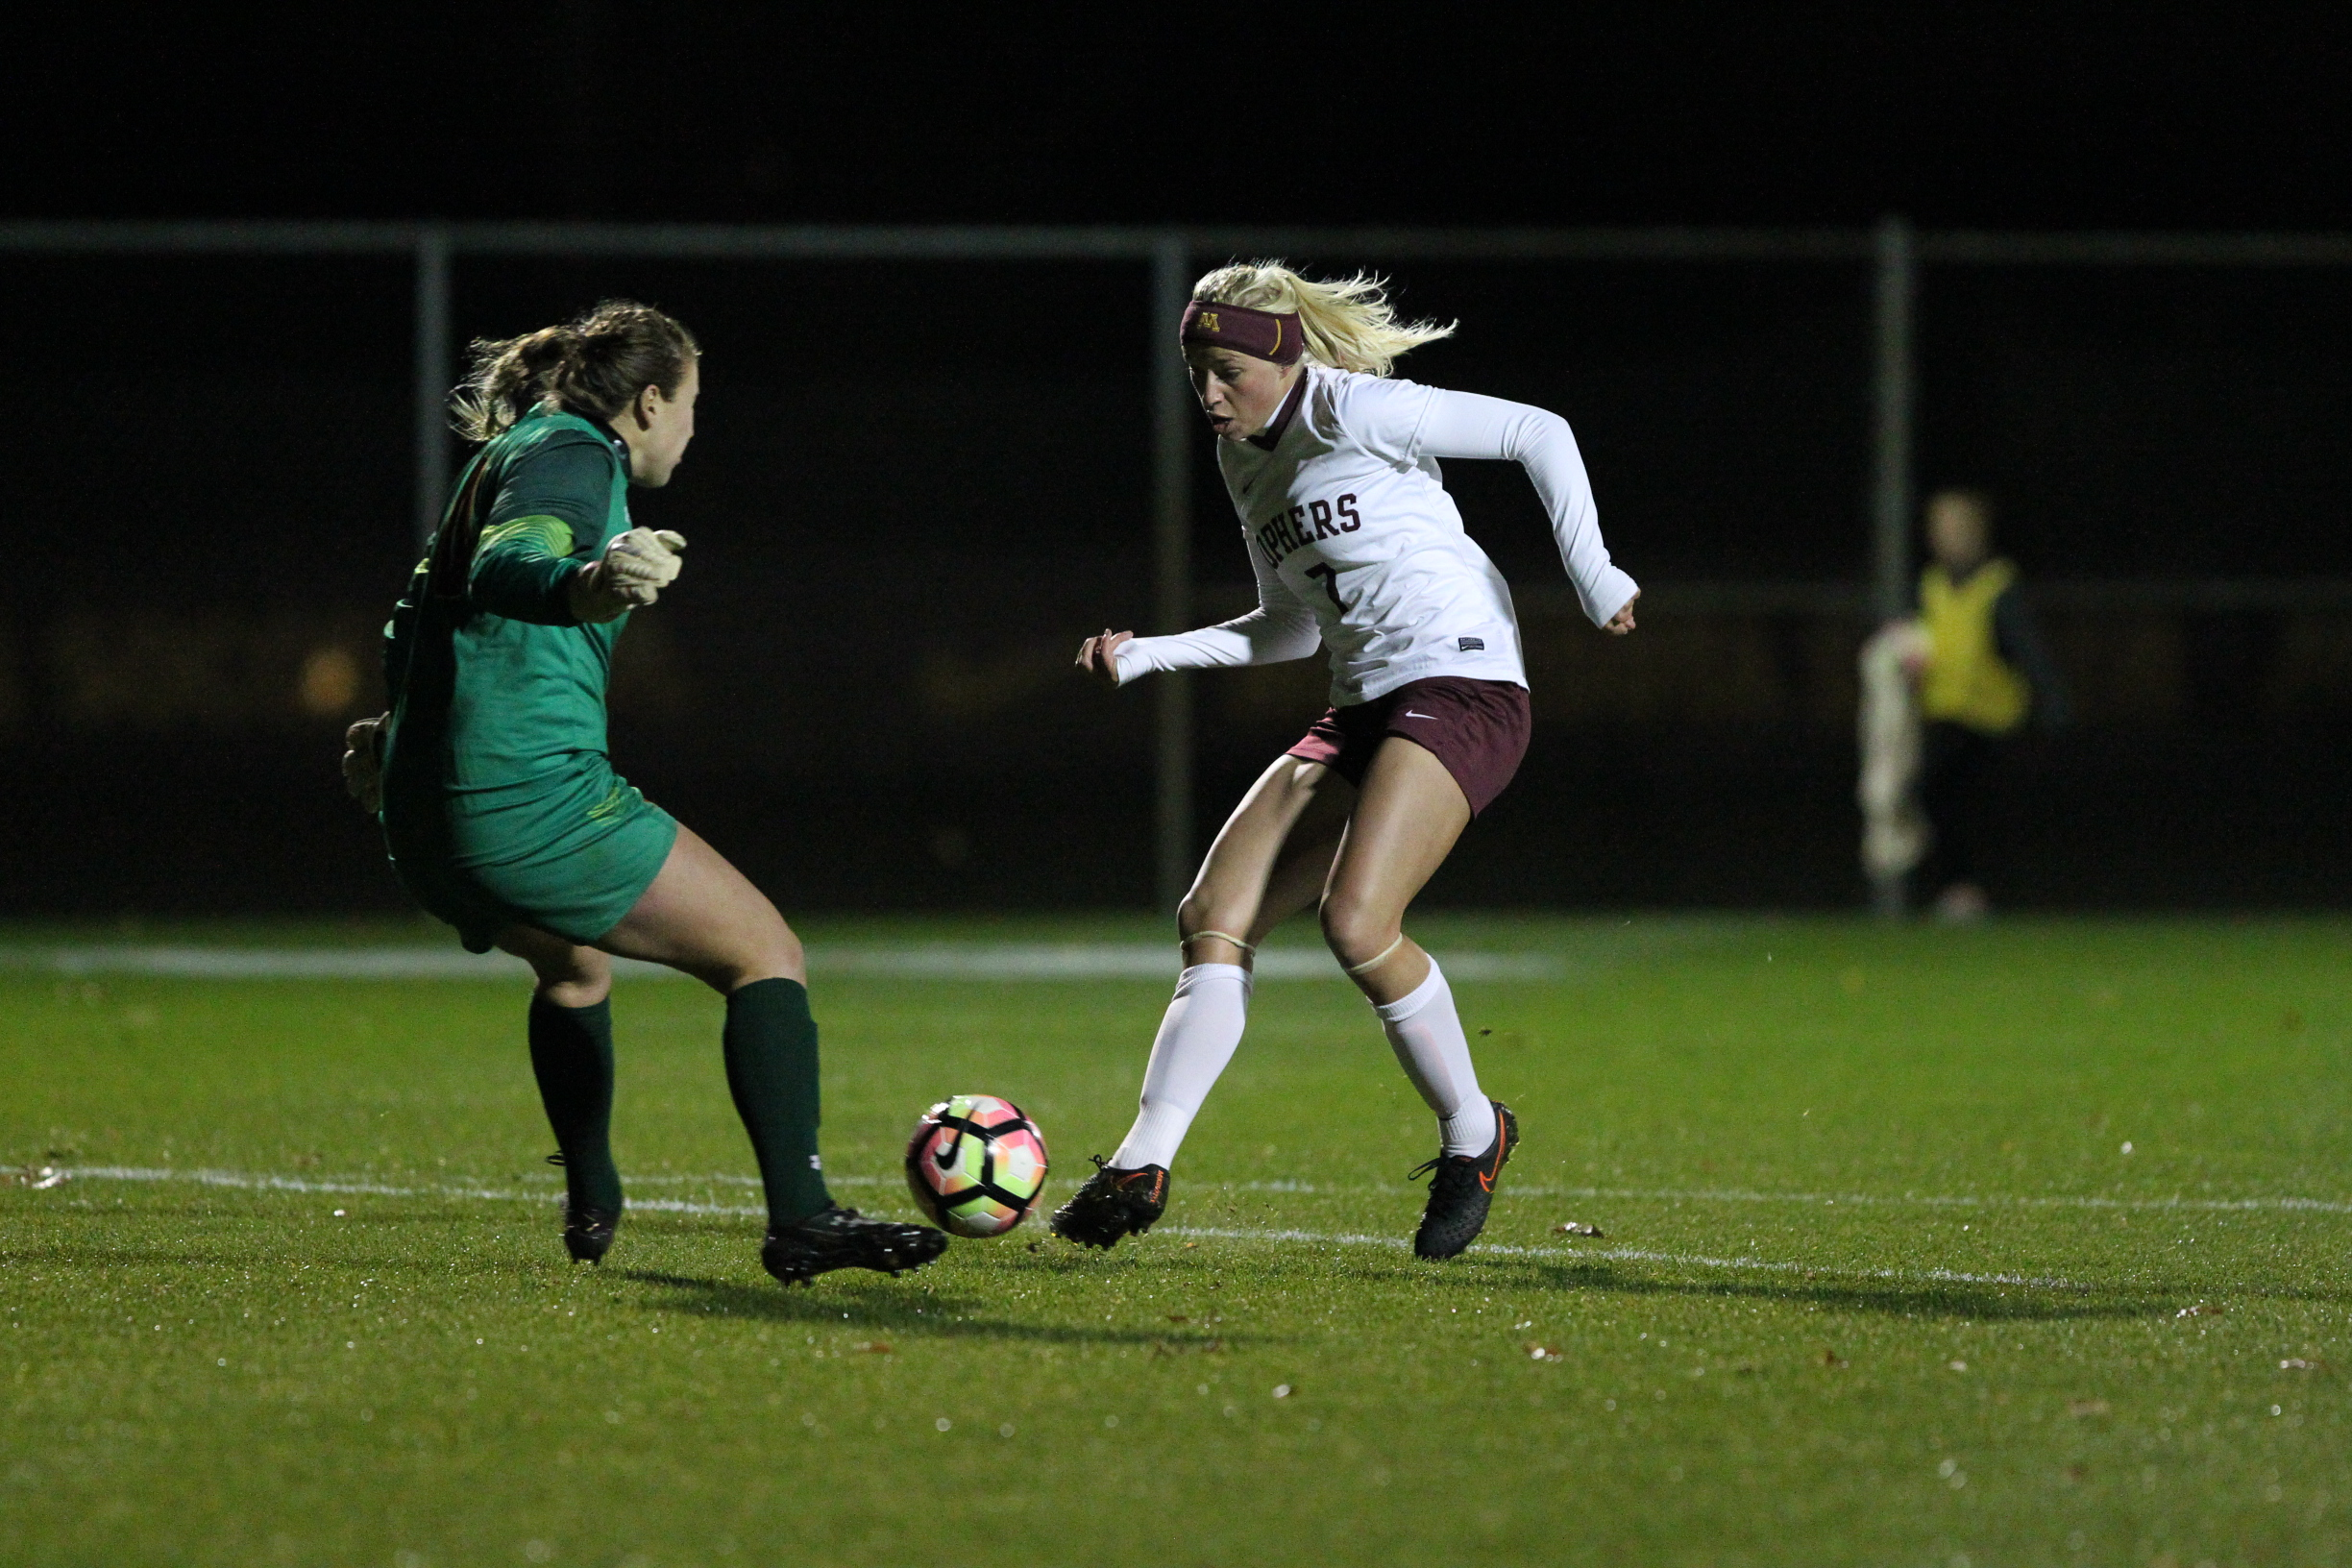 Sydney Squires scored two of the six goals in the win over Maryland. Photo by Jeremy Olson - www.digitalgopher.com